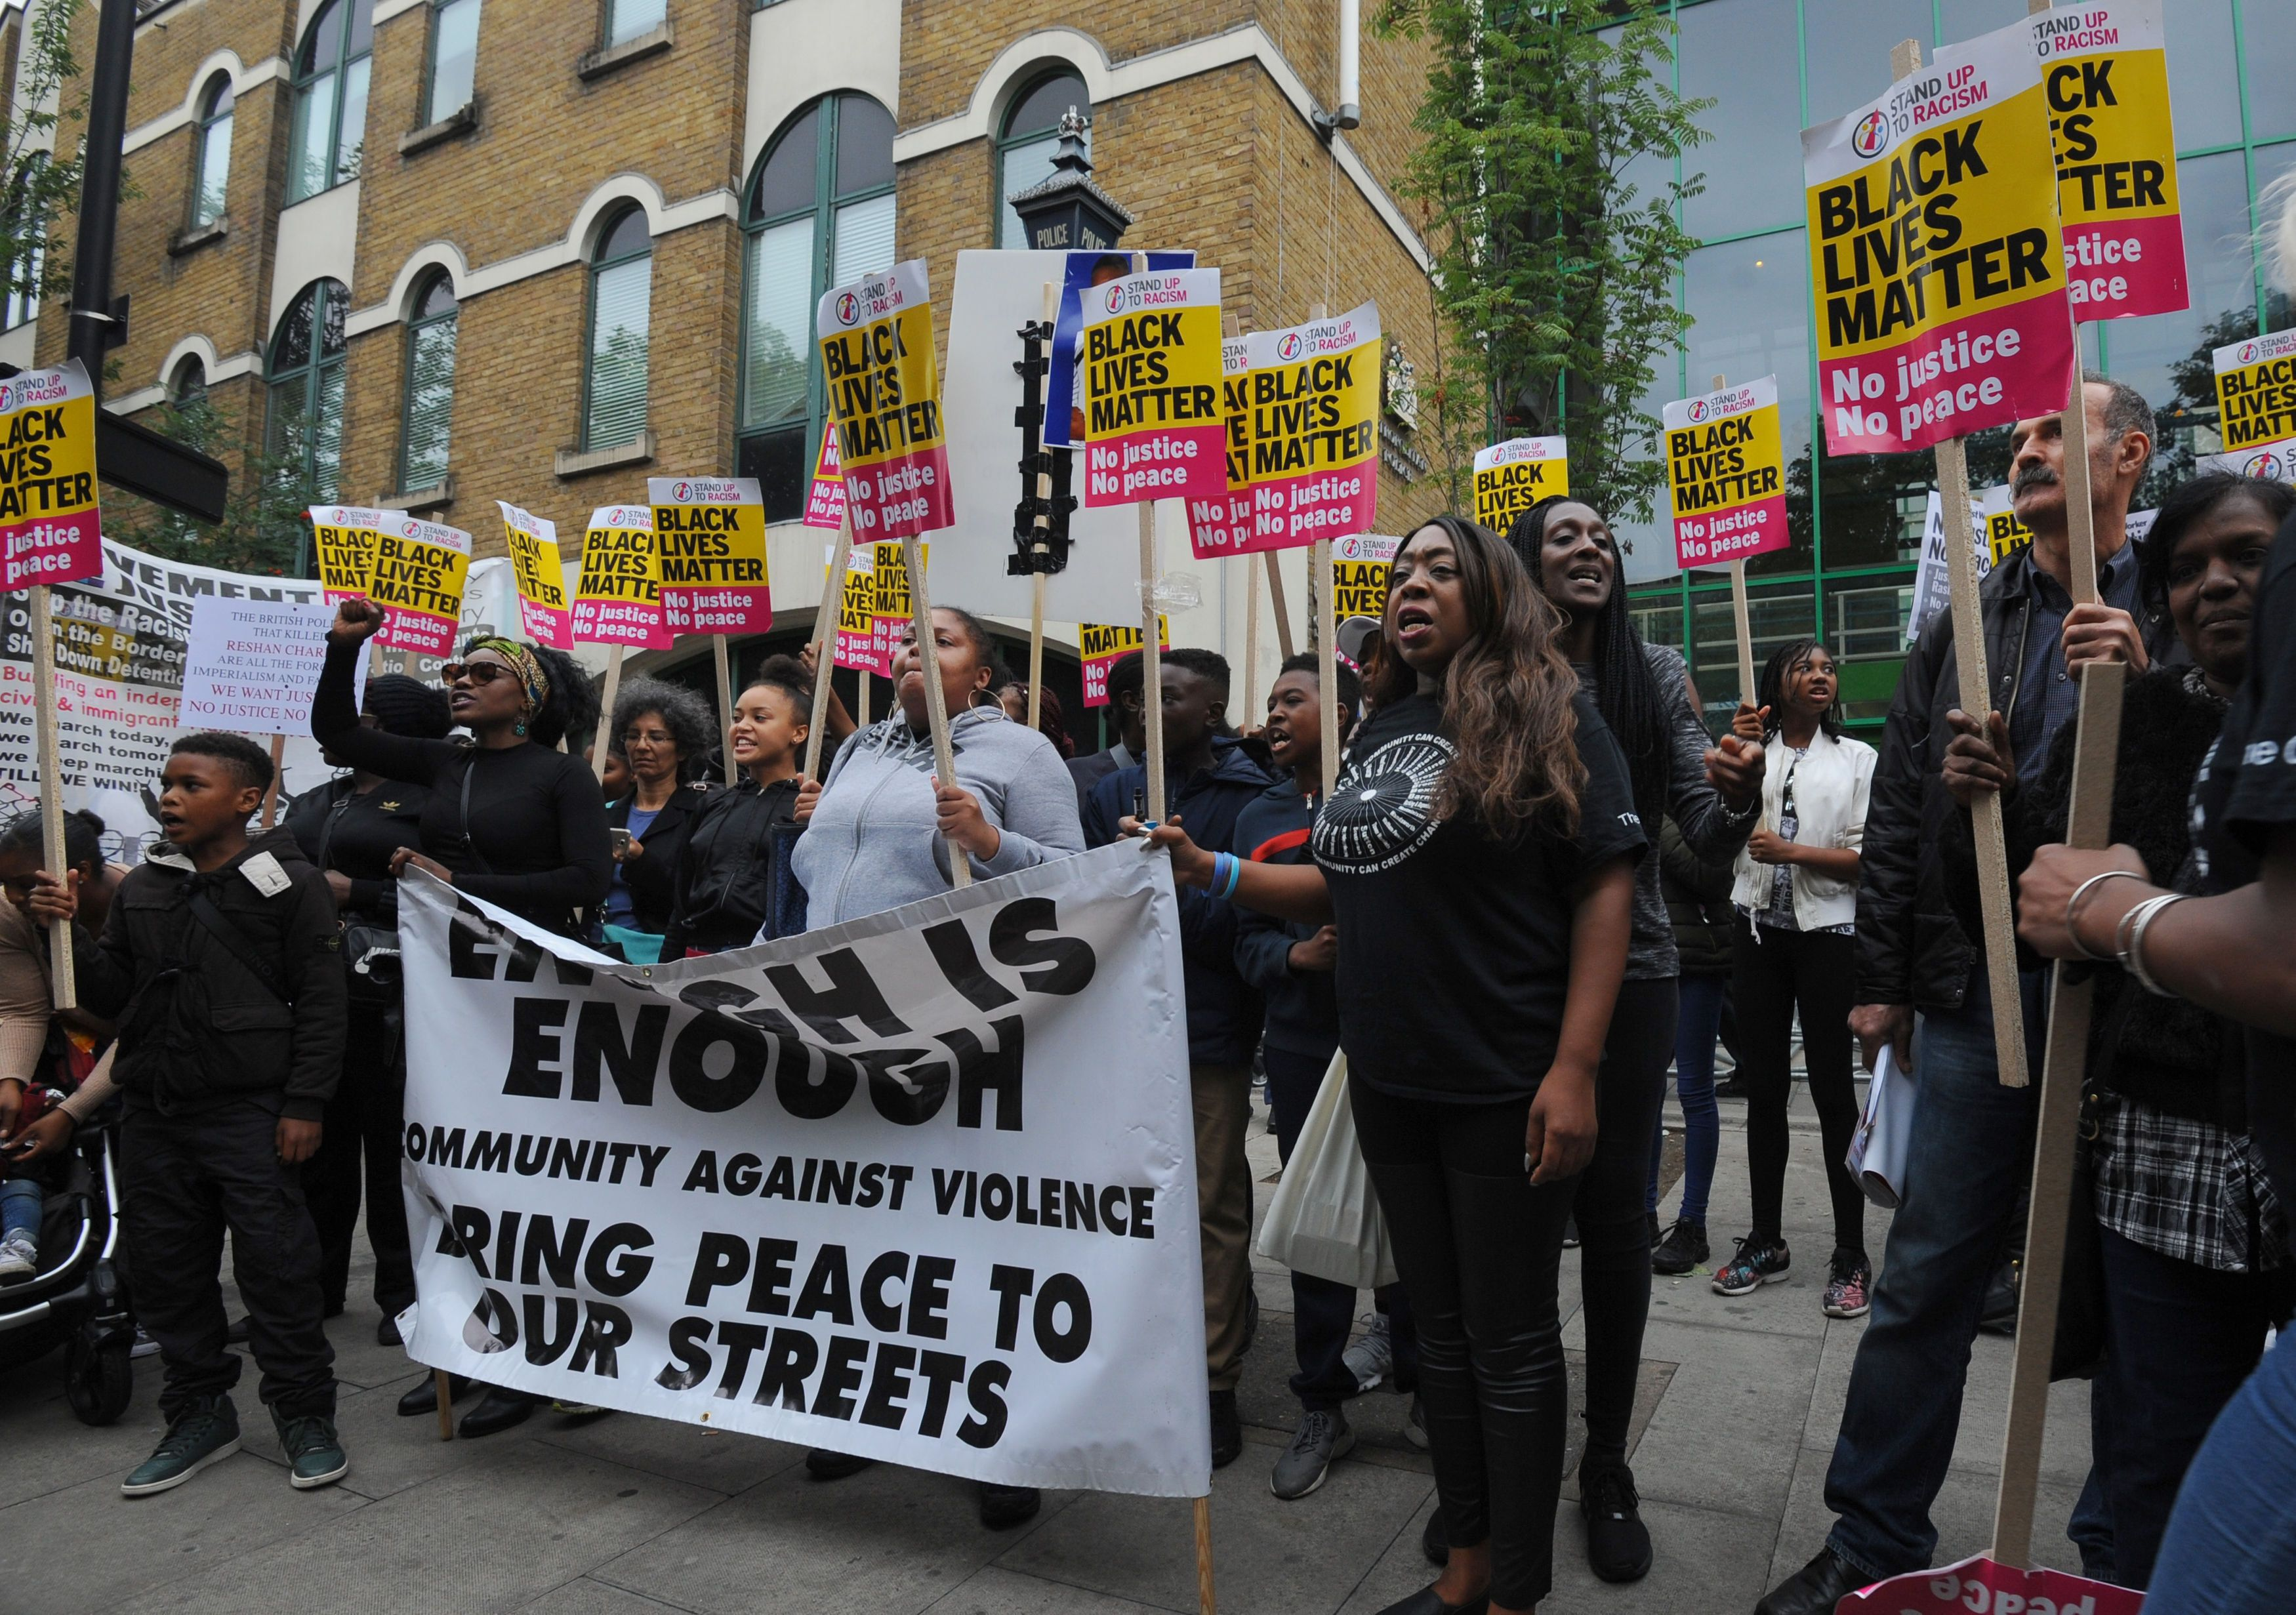 Members from Hackey Stand Up To Racism protest outside Stoke Newington Police